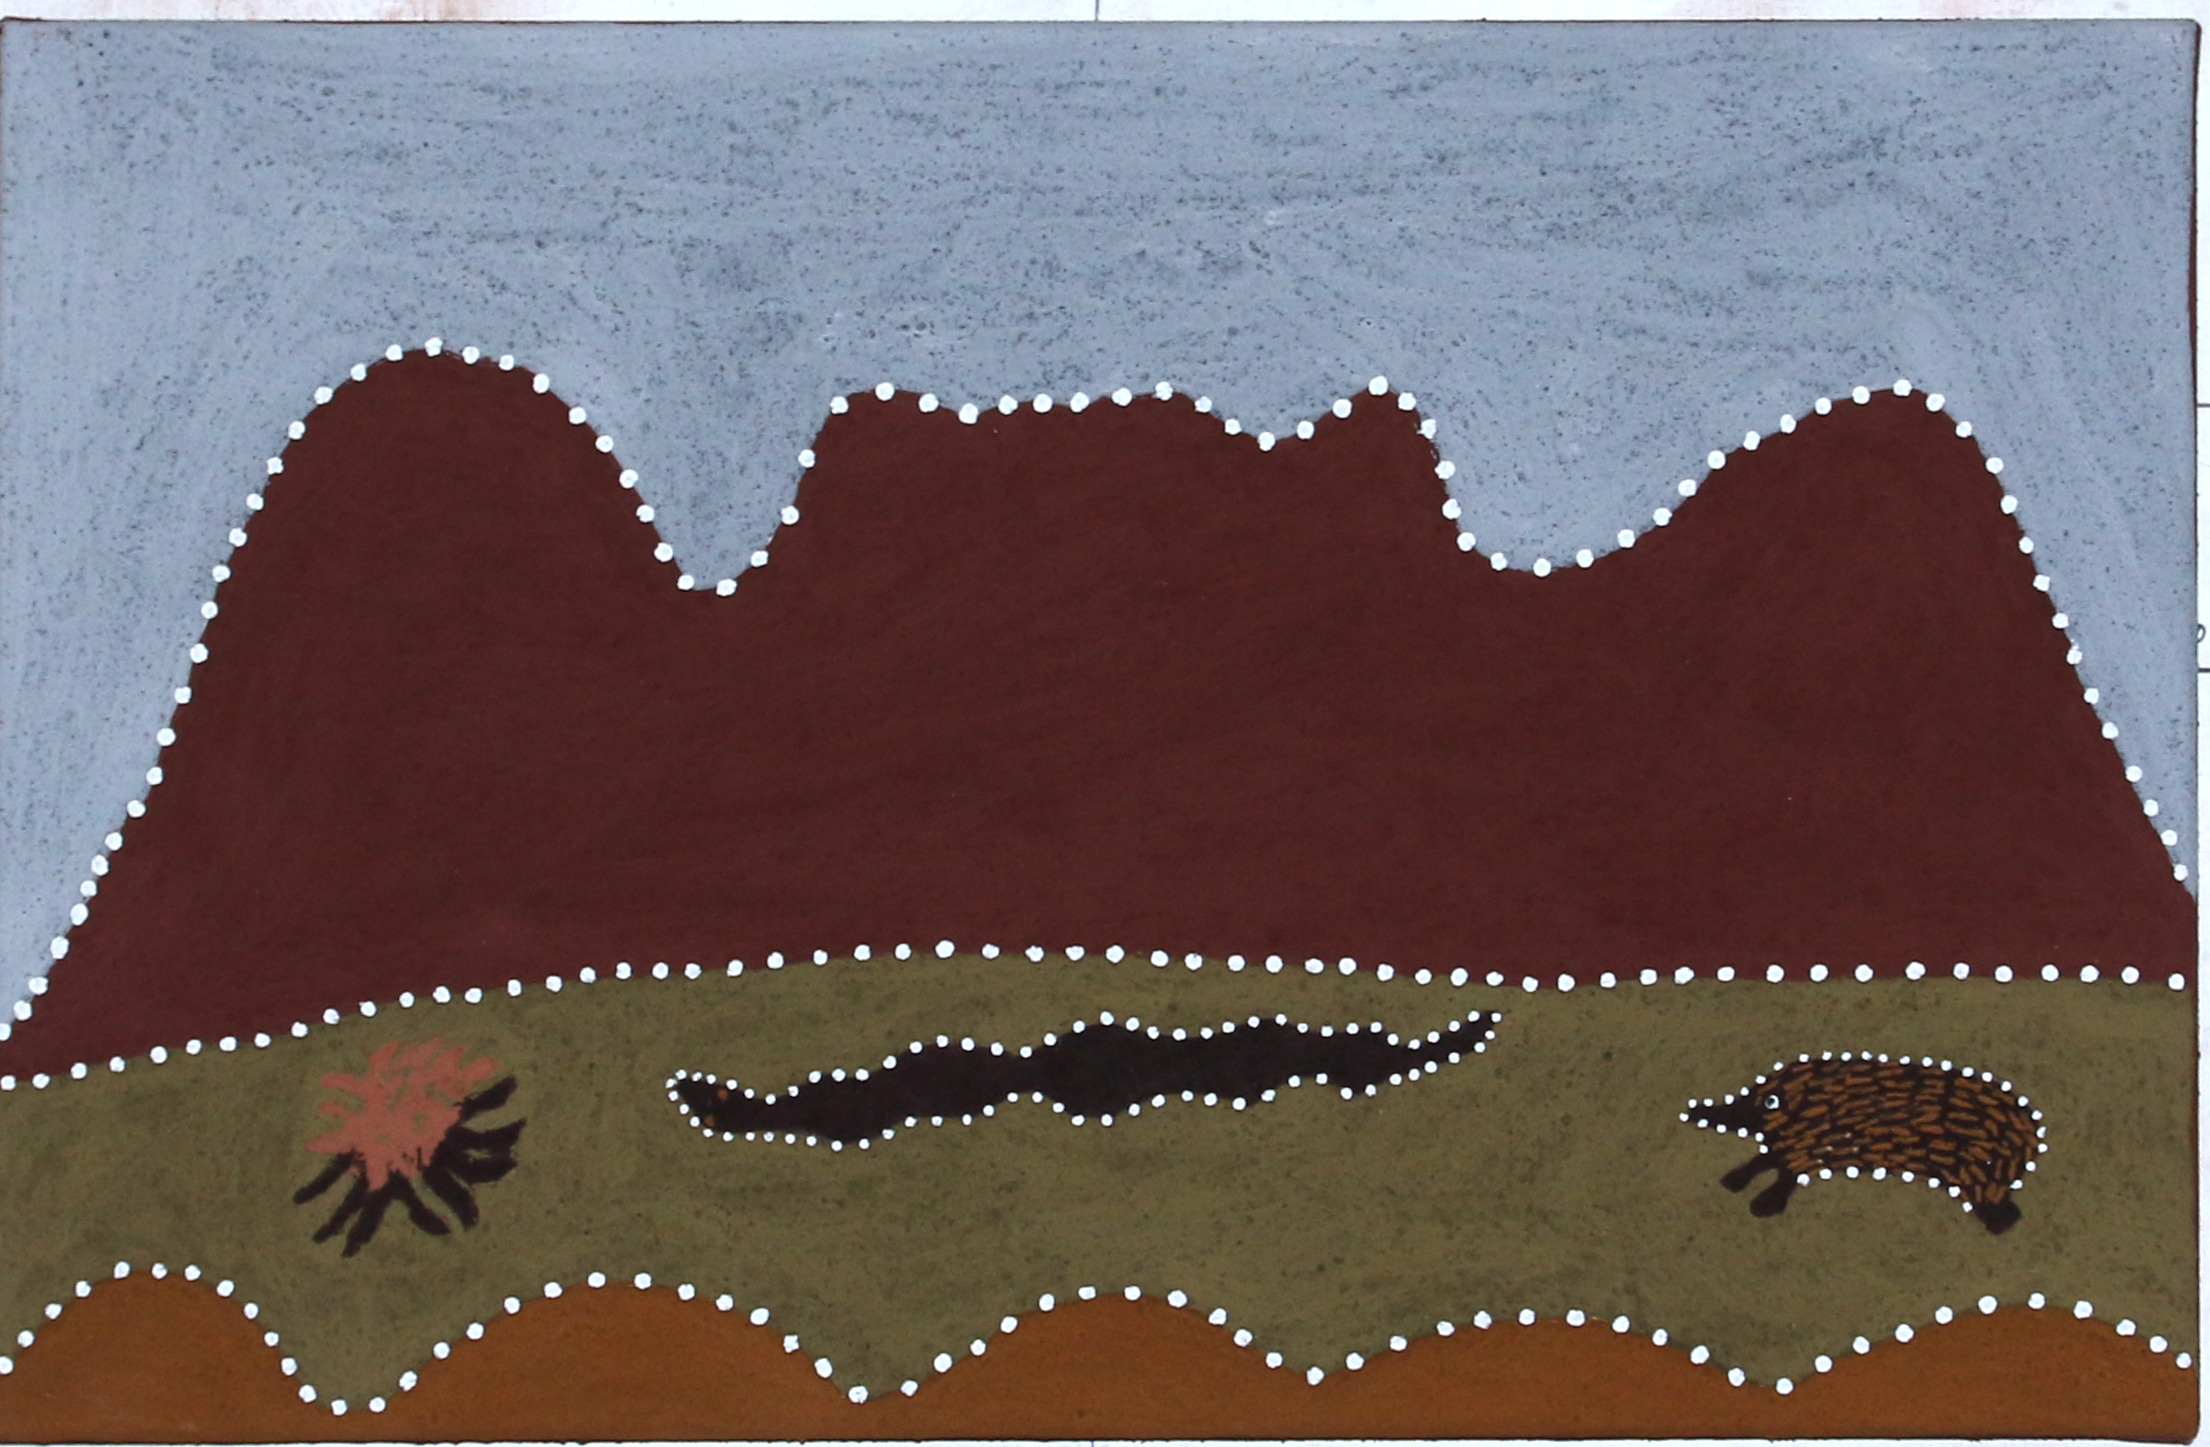 Shirley Purdie, Baggabal Gilban - Porcupine, Mabel Downs. 2018. Natural ochre and pigments on canvas. 45 x 70 cm. $1,900